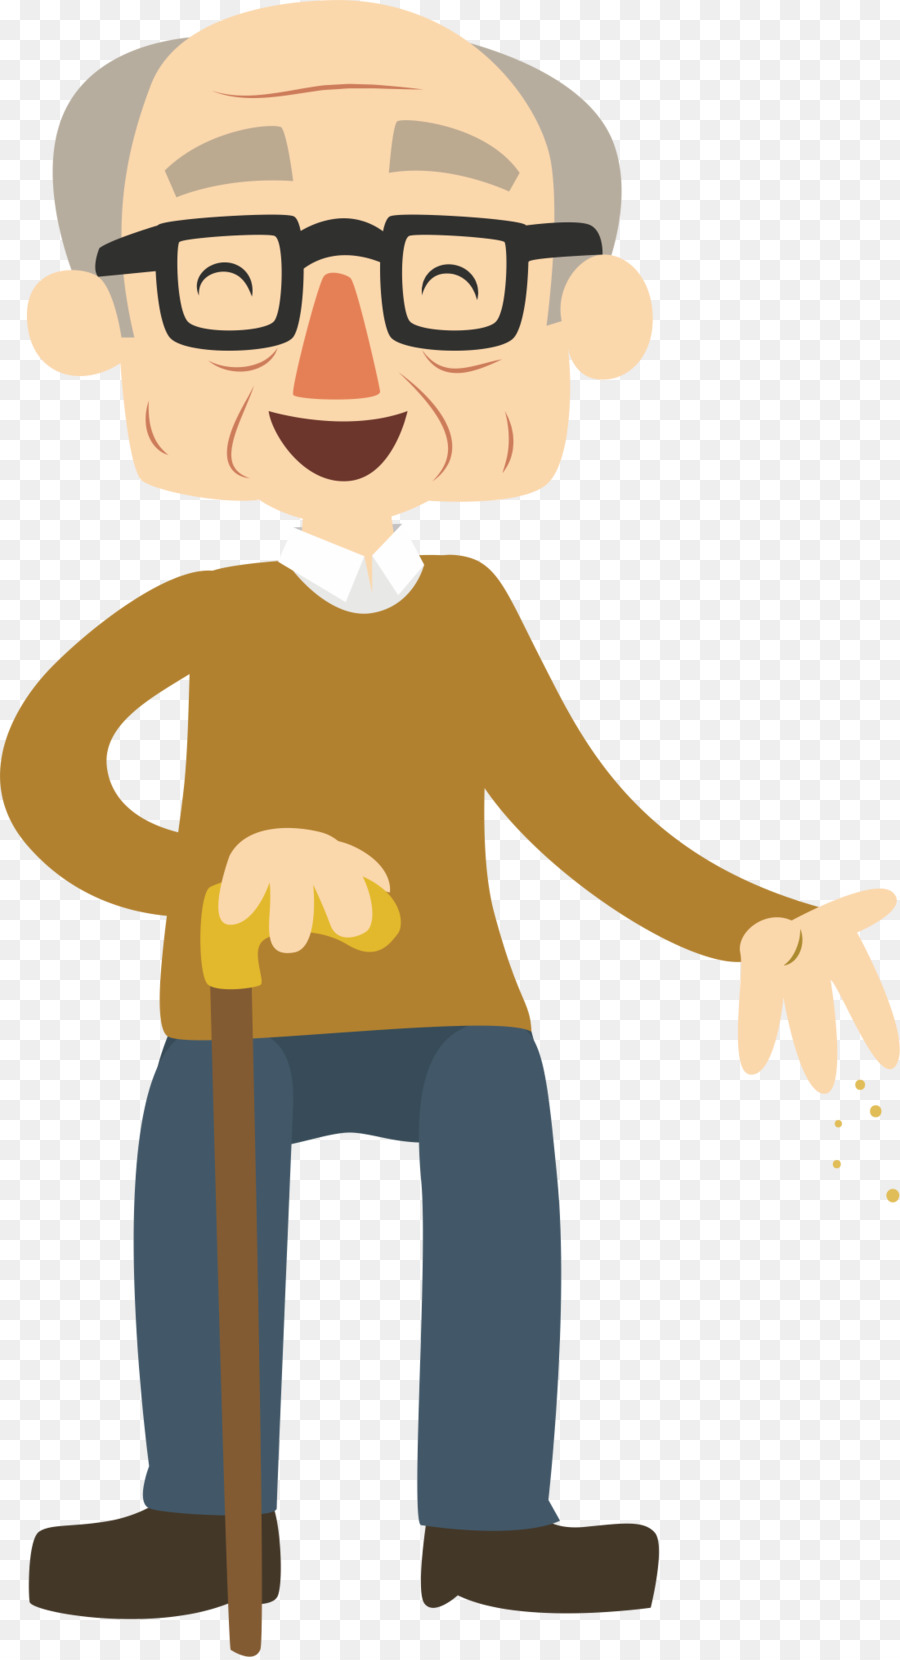 Clipart old age royalty free Old age clipart 3 » Clipart Station royalty free